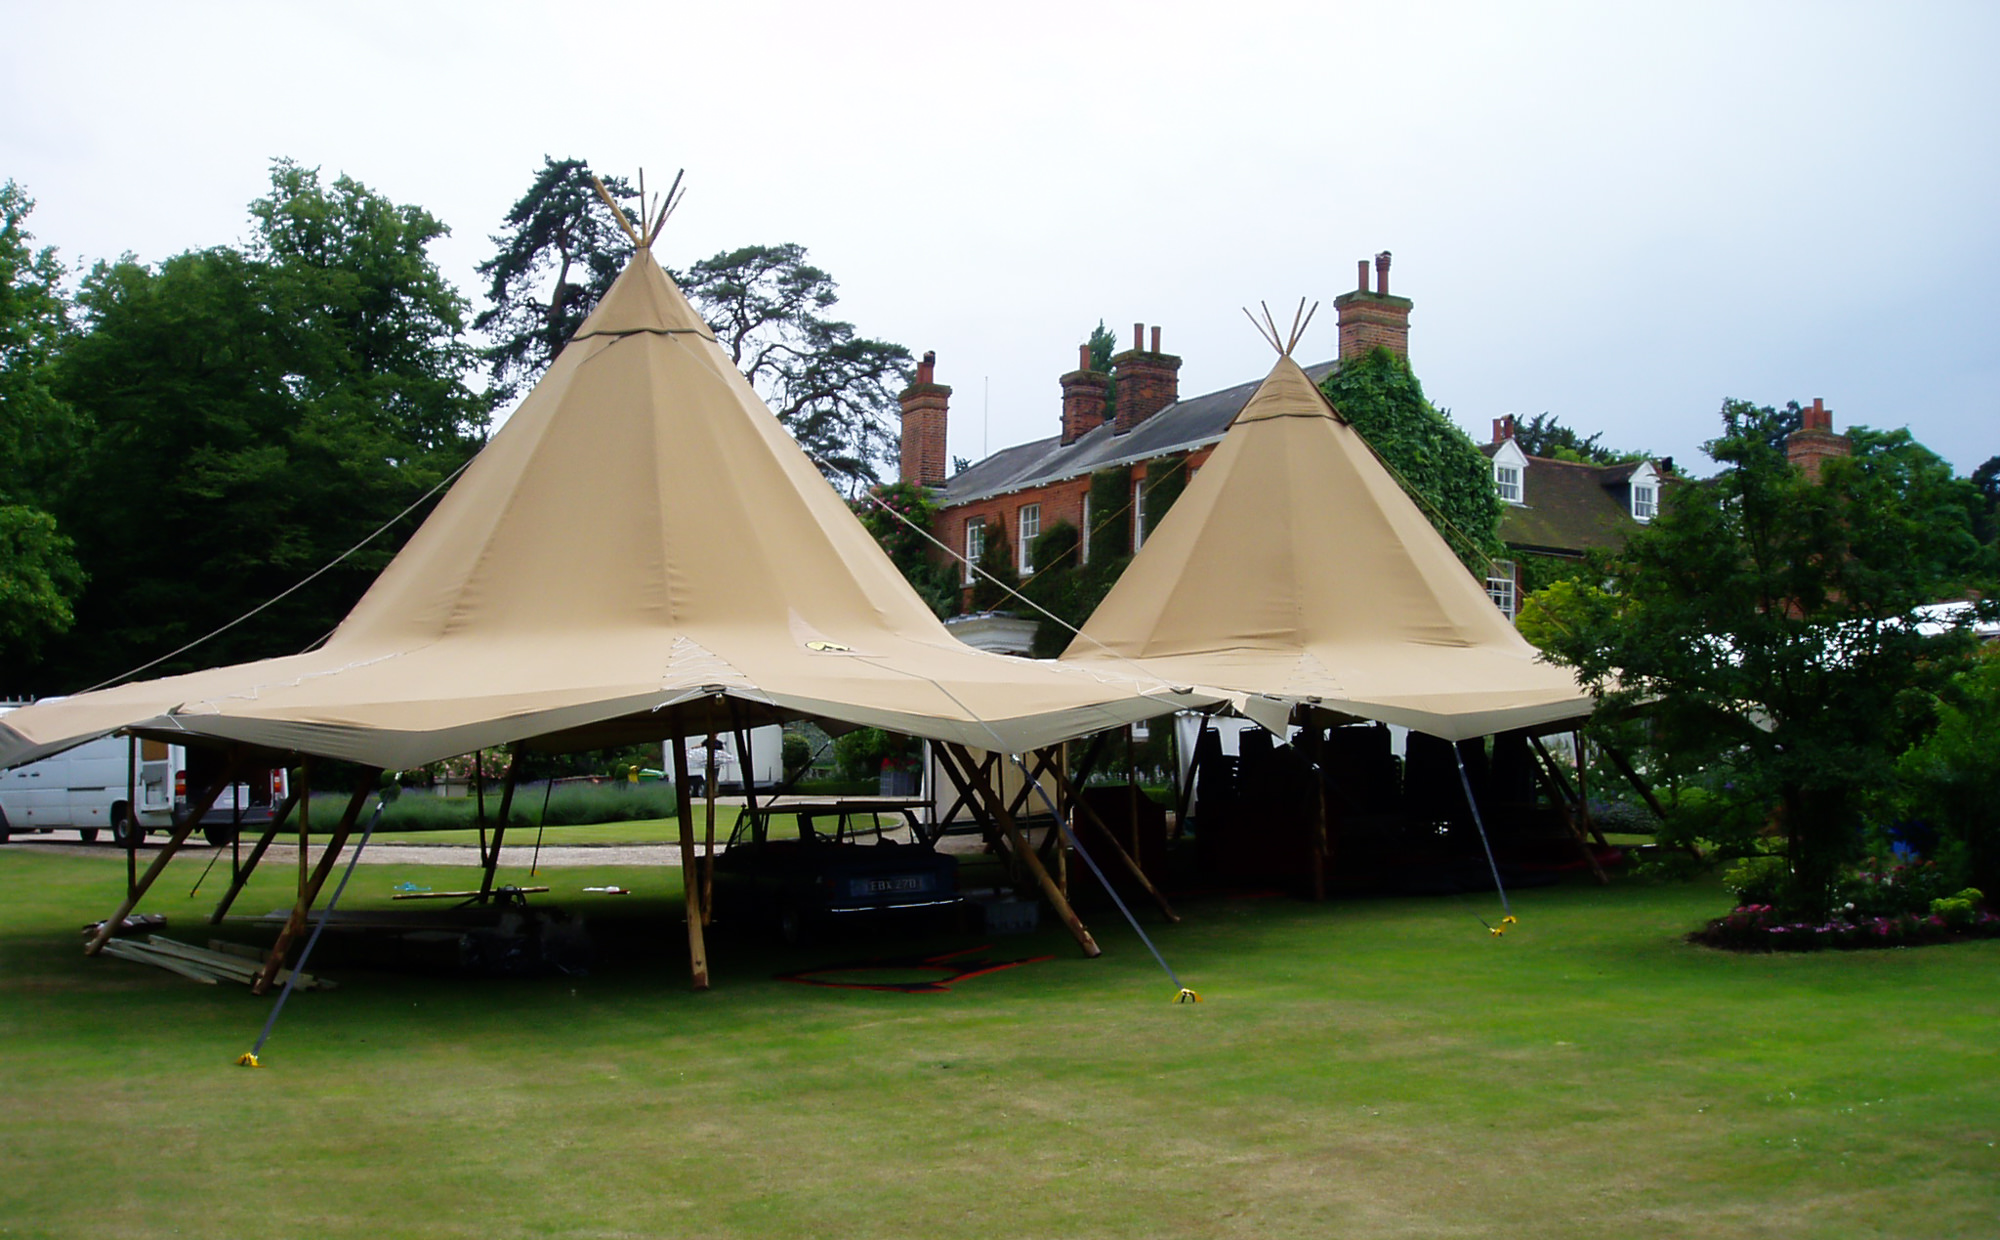 Copy of Tipi with the sides up